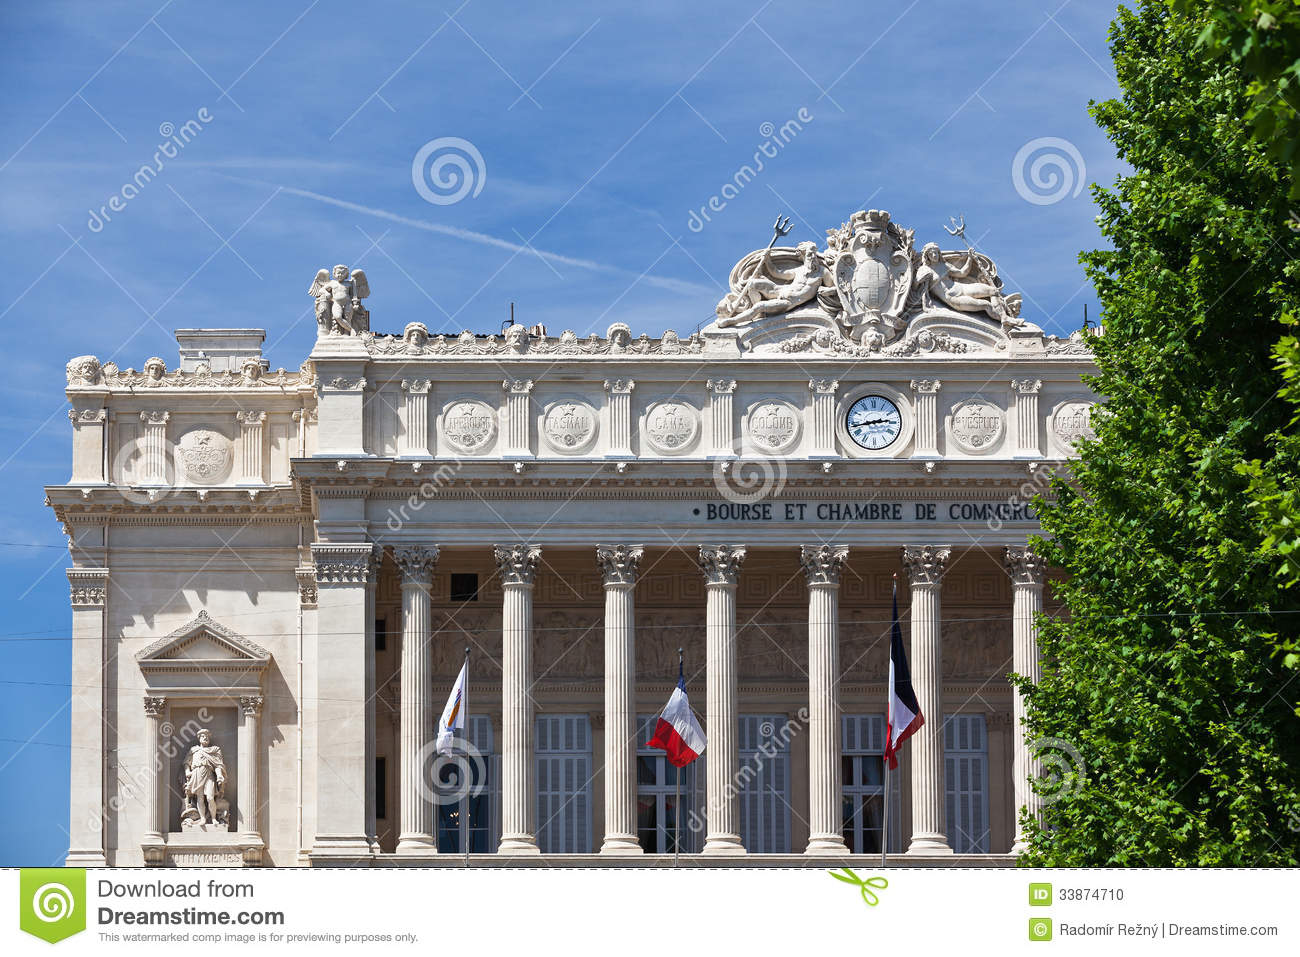 Bourse et chambre de commerce in marseille stock photo for Chambre de commmerce